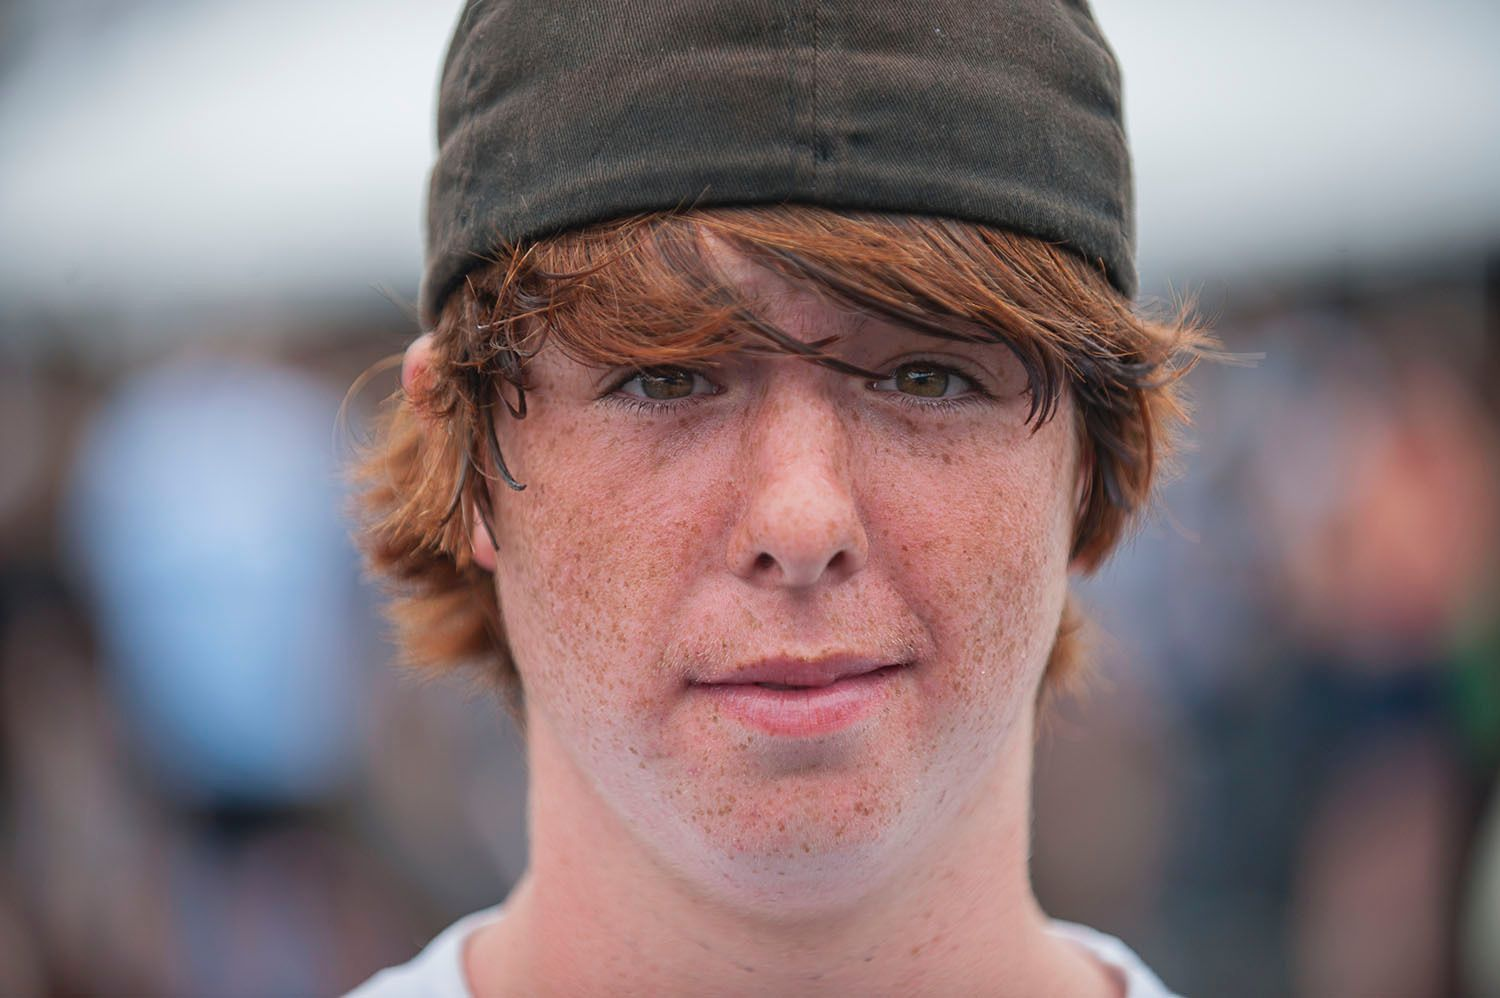 Young man with red hair and freckles and hat